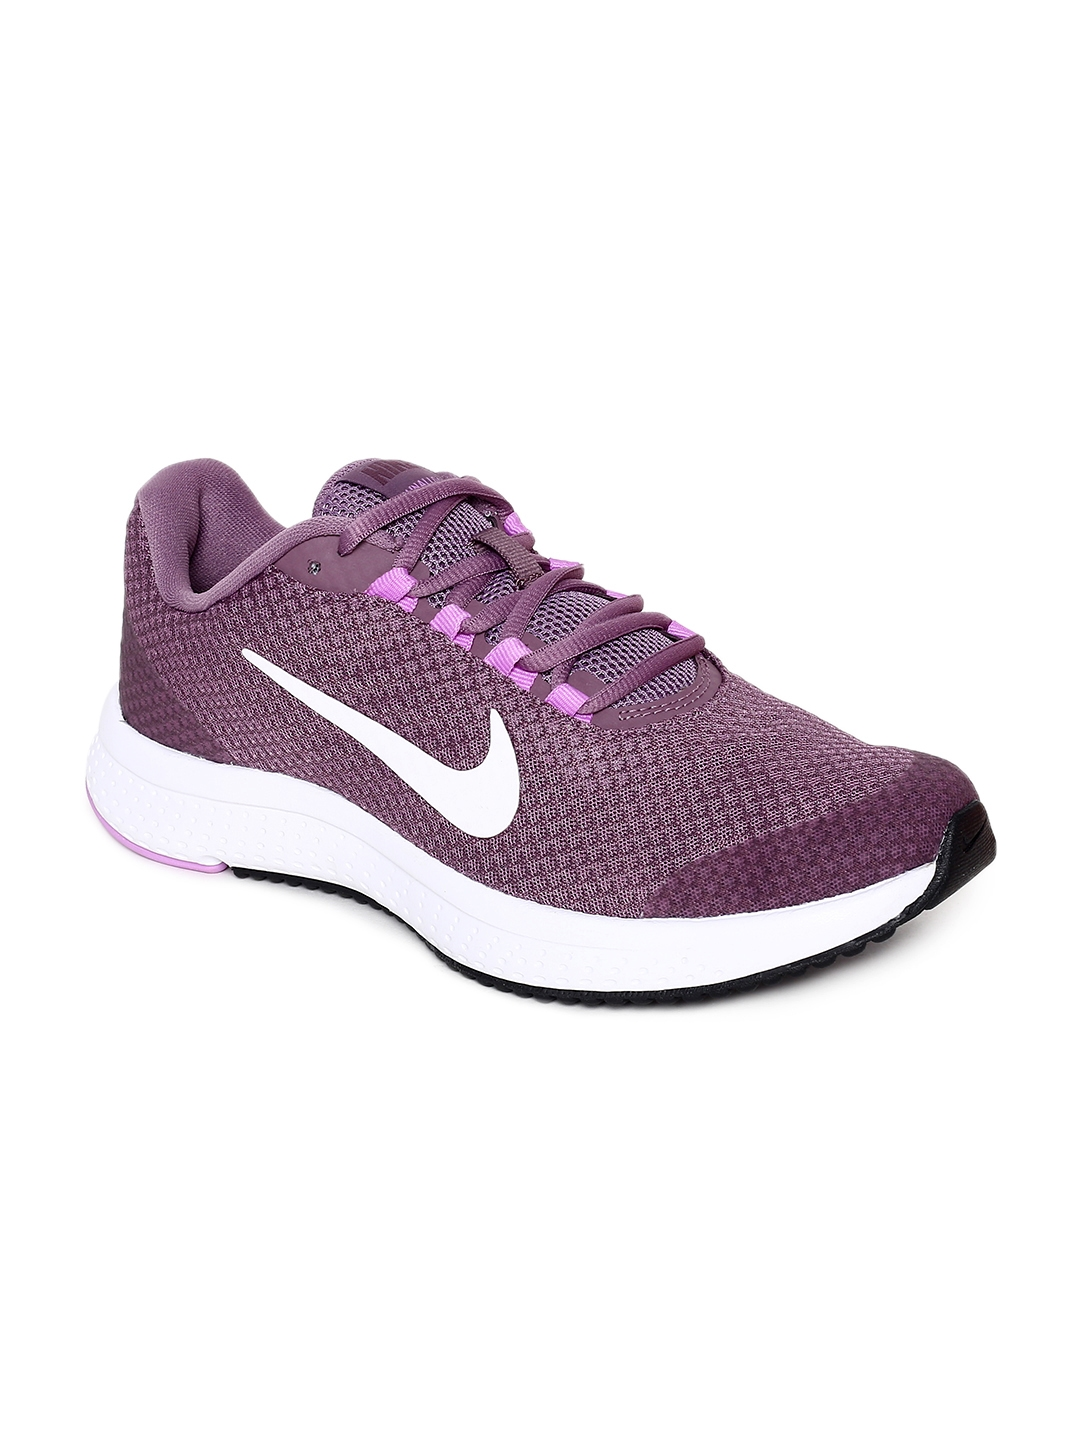 save off 405fb 774f3 Nike Women Purple RUNALLDAY Running Shoe. Best Price  ...